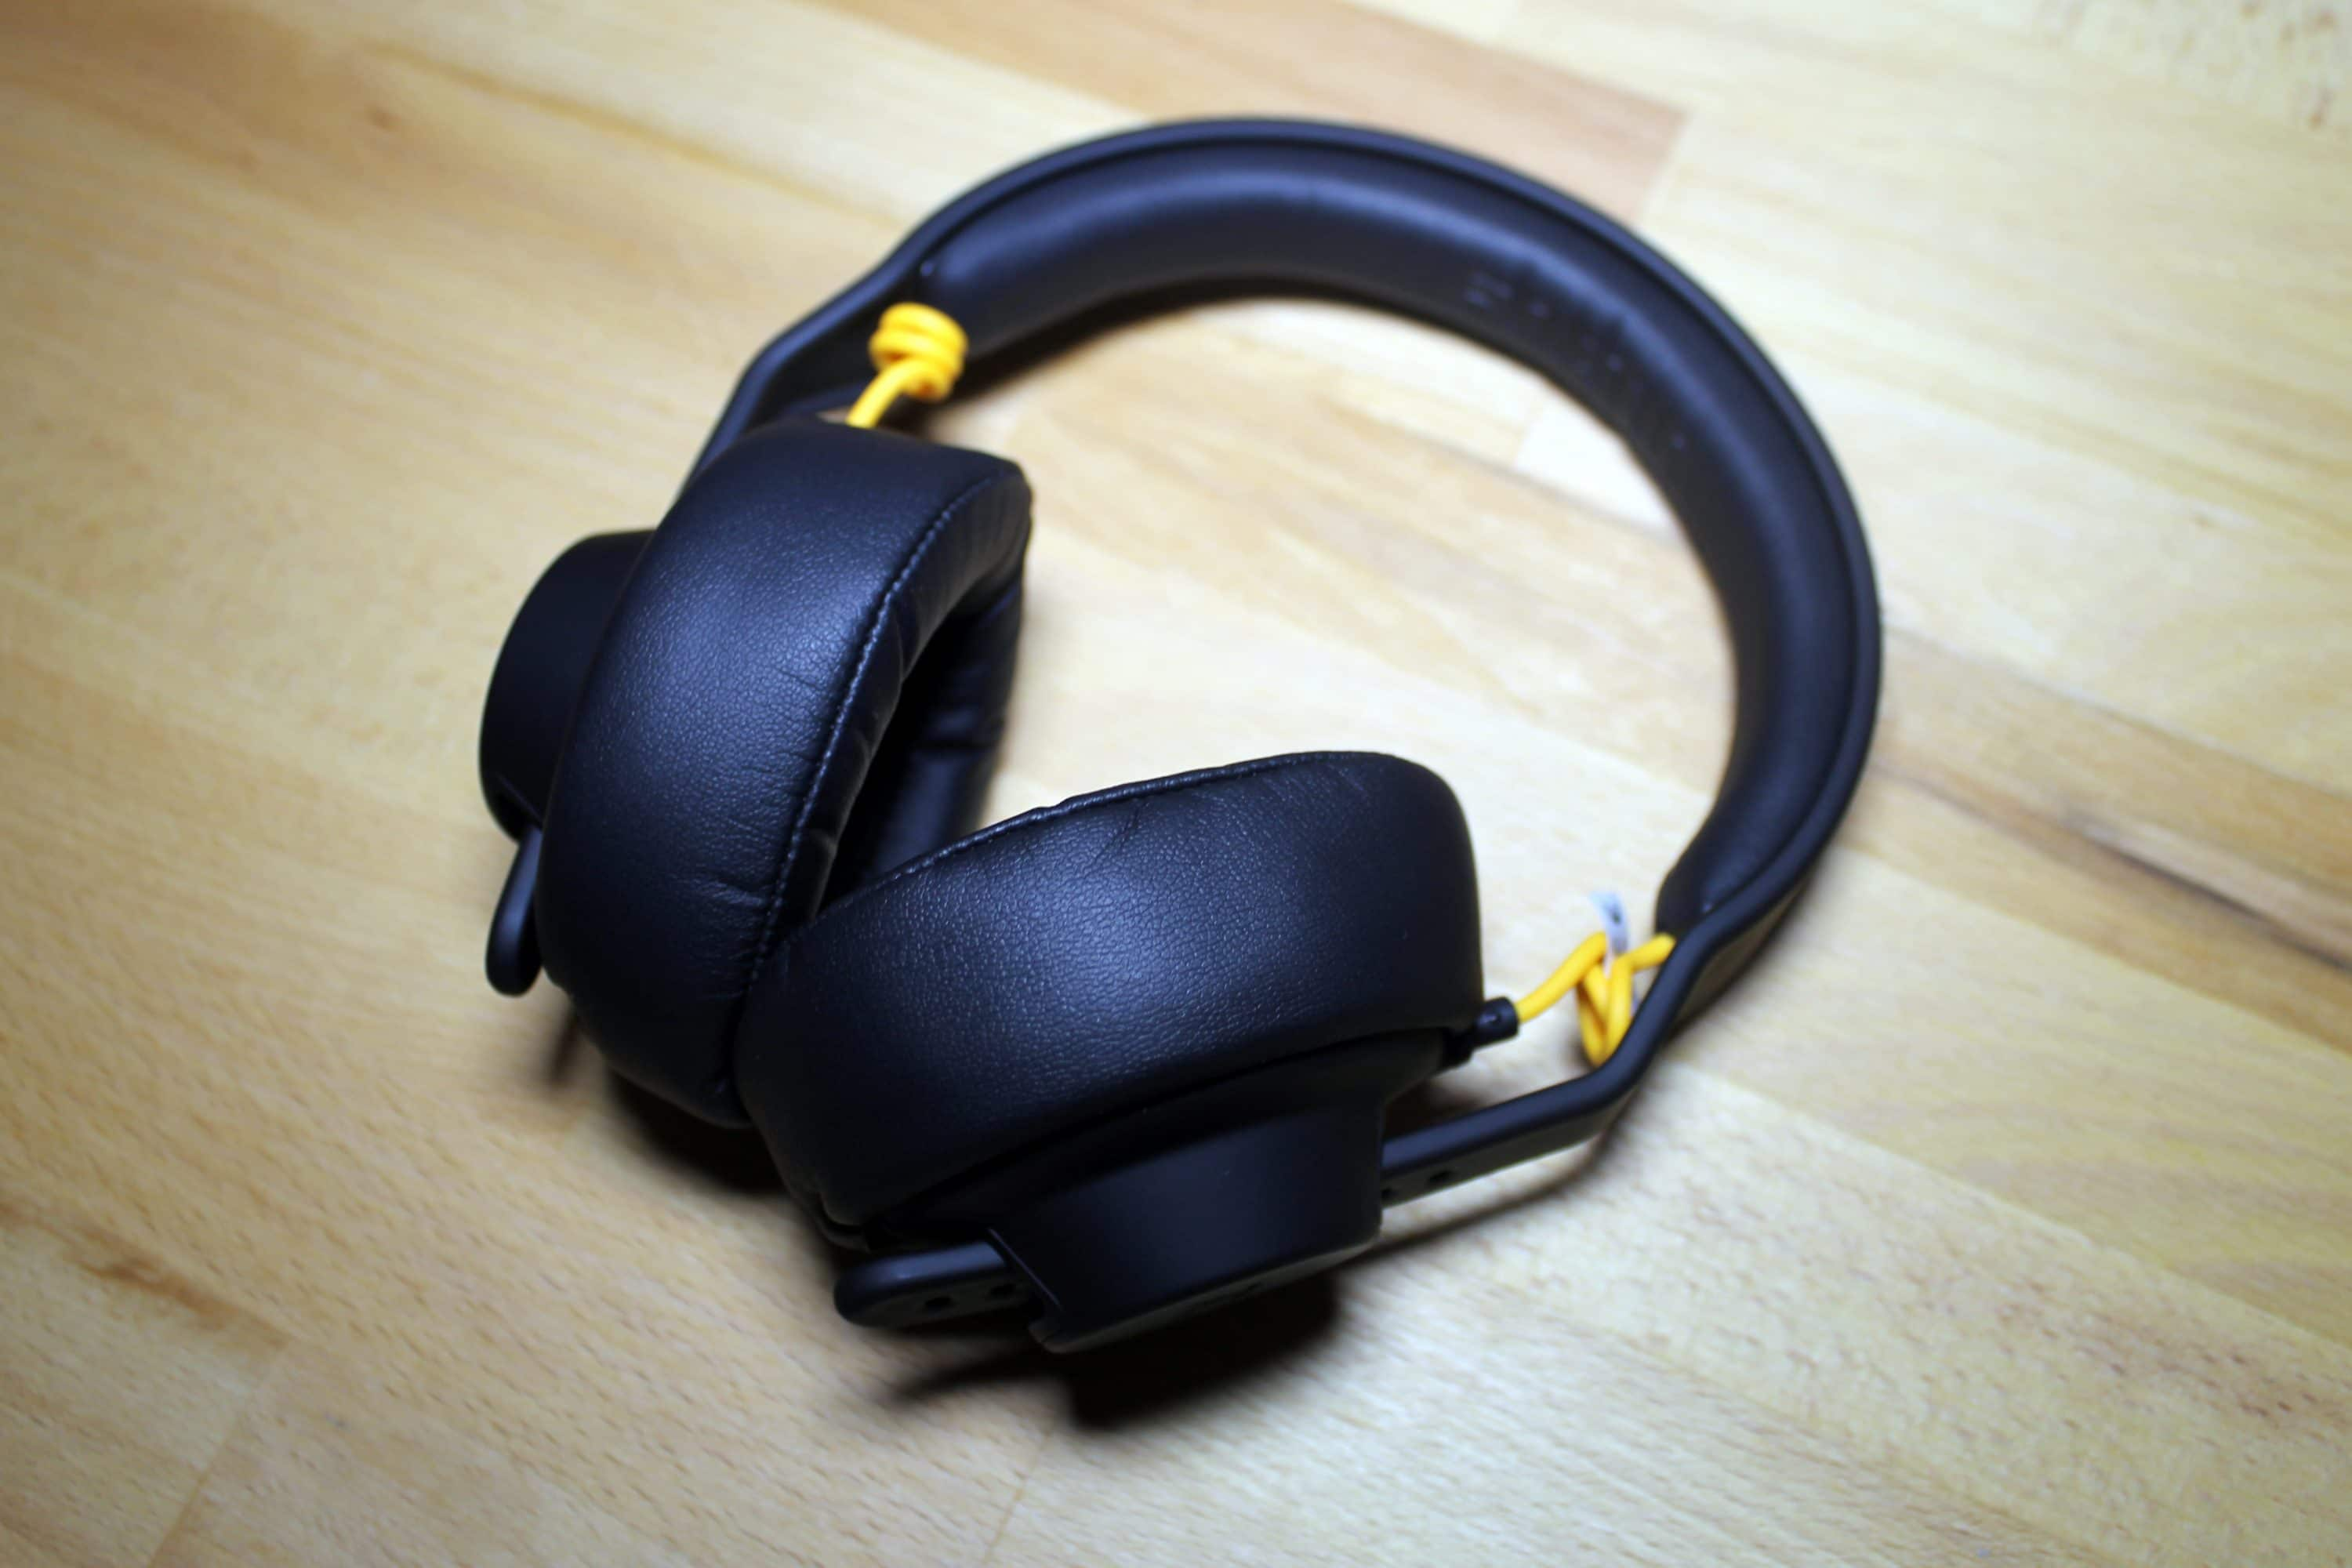 fnatic gear duel tma 2 modulares gaming headset im test. Black Bedroom Furniture Sets. Home Design Ideas